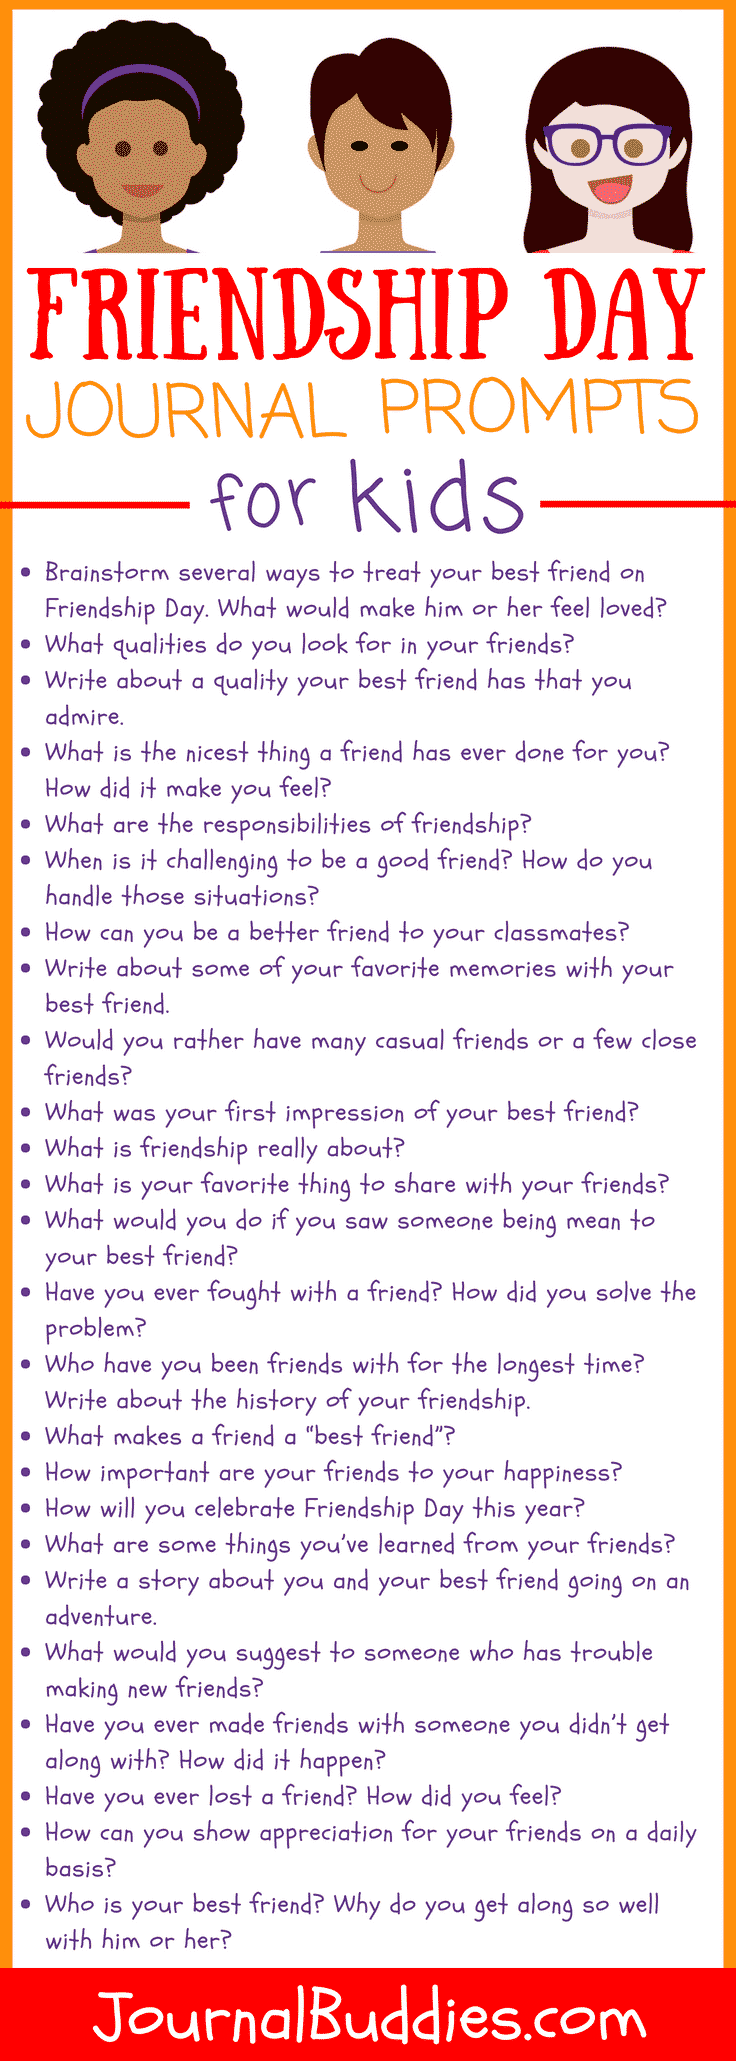 With these 54 new journal prompts, kids can think about the best qualities of their friends and the meaning of their relationships.